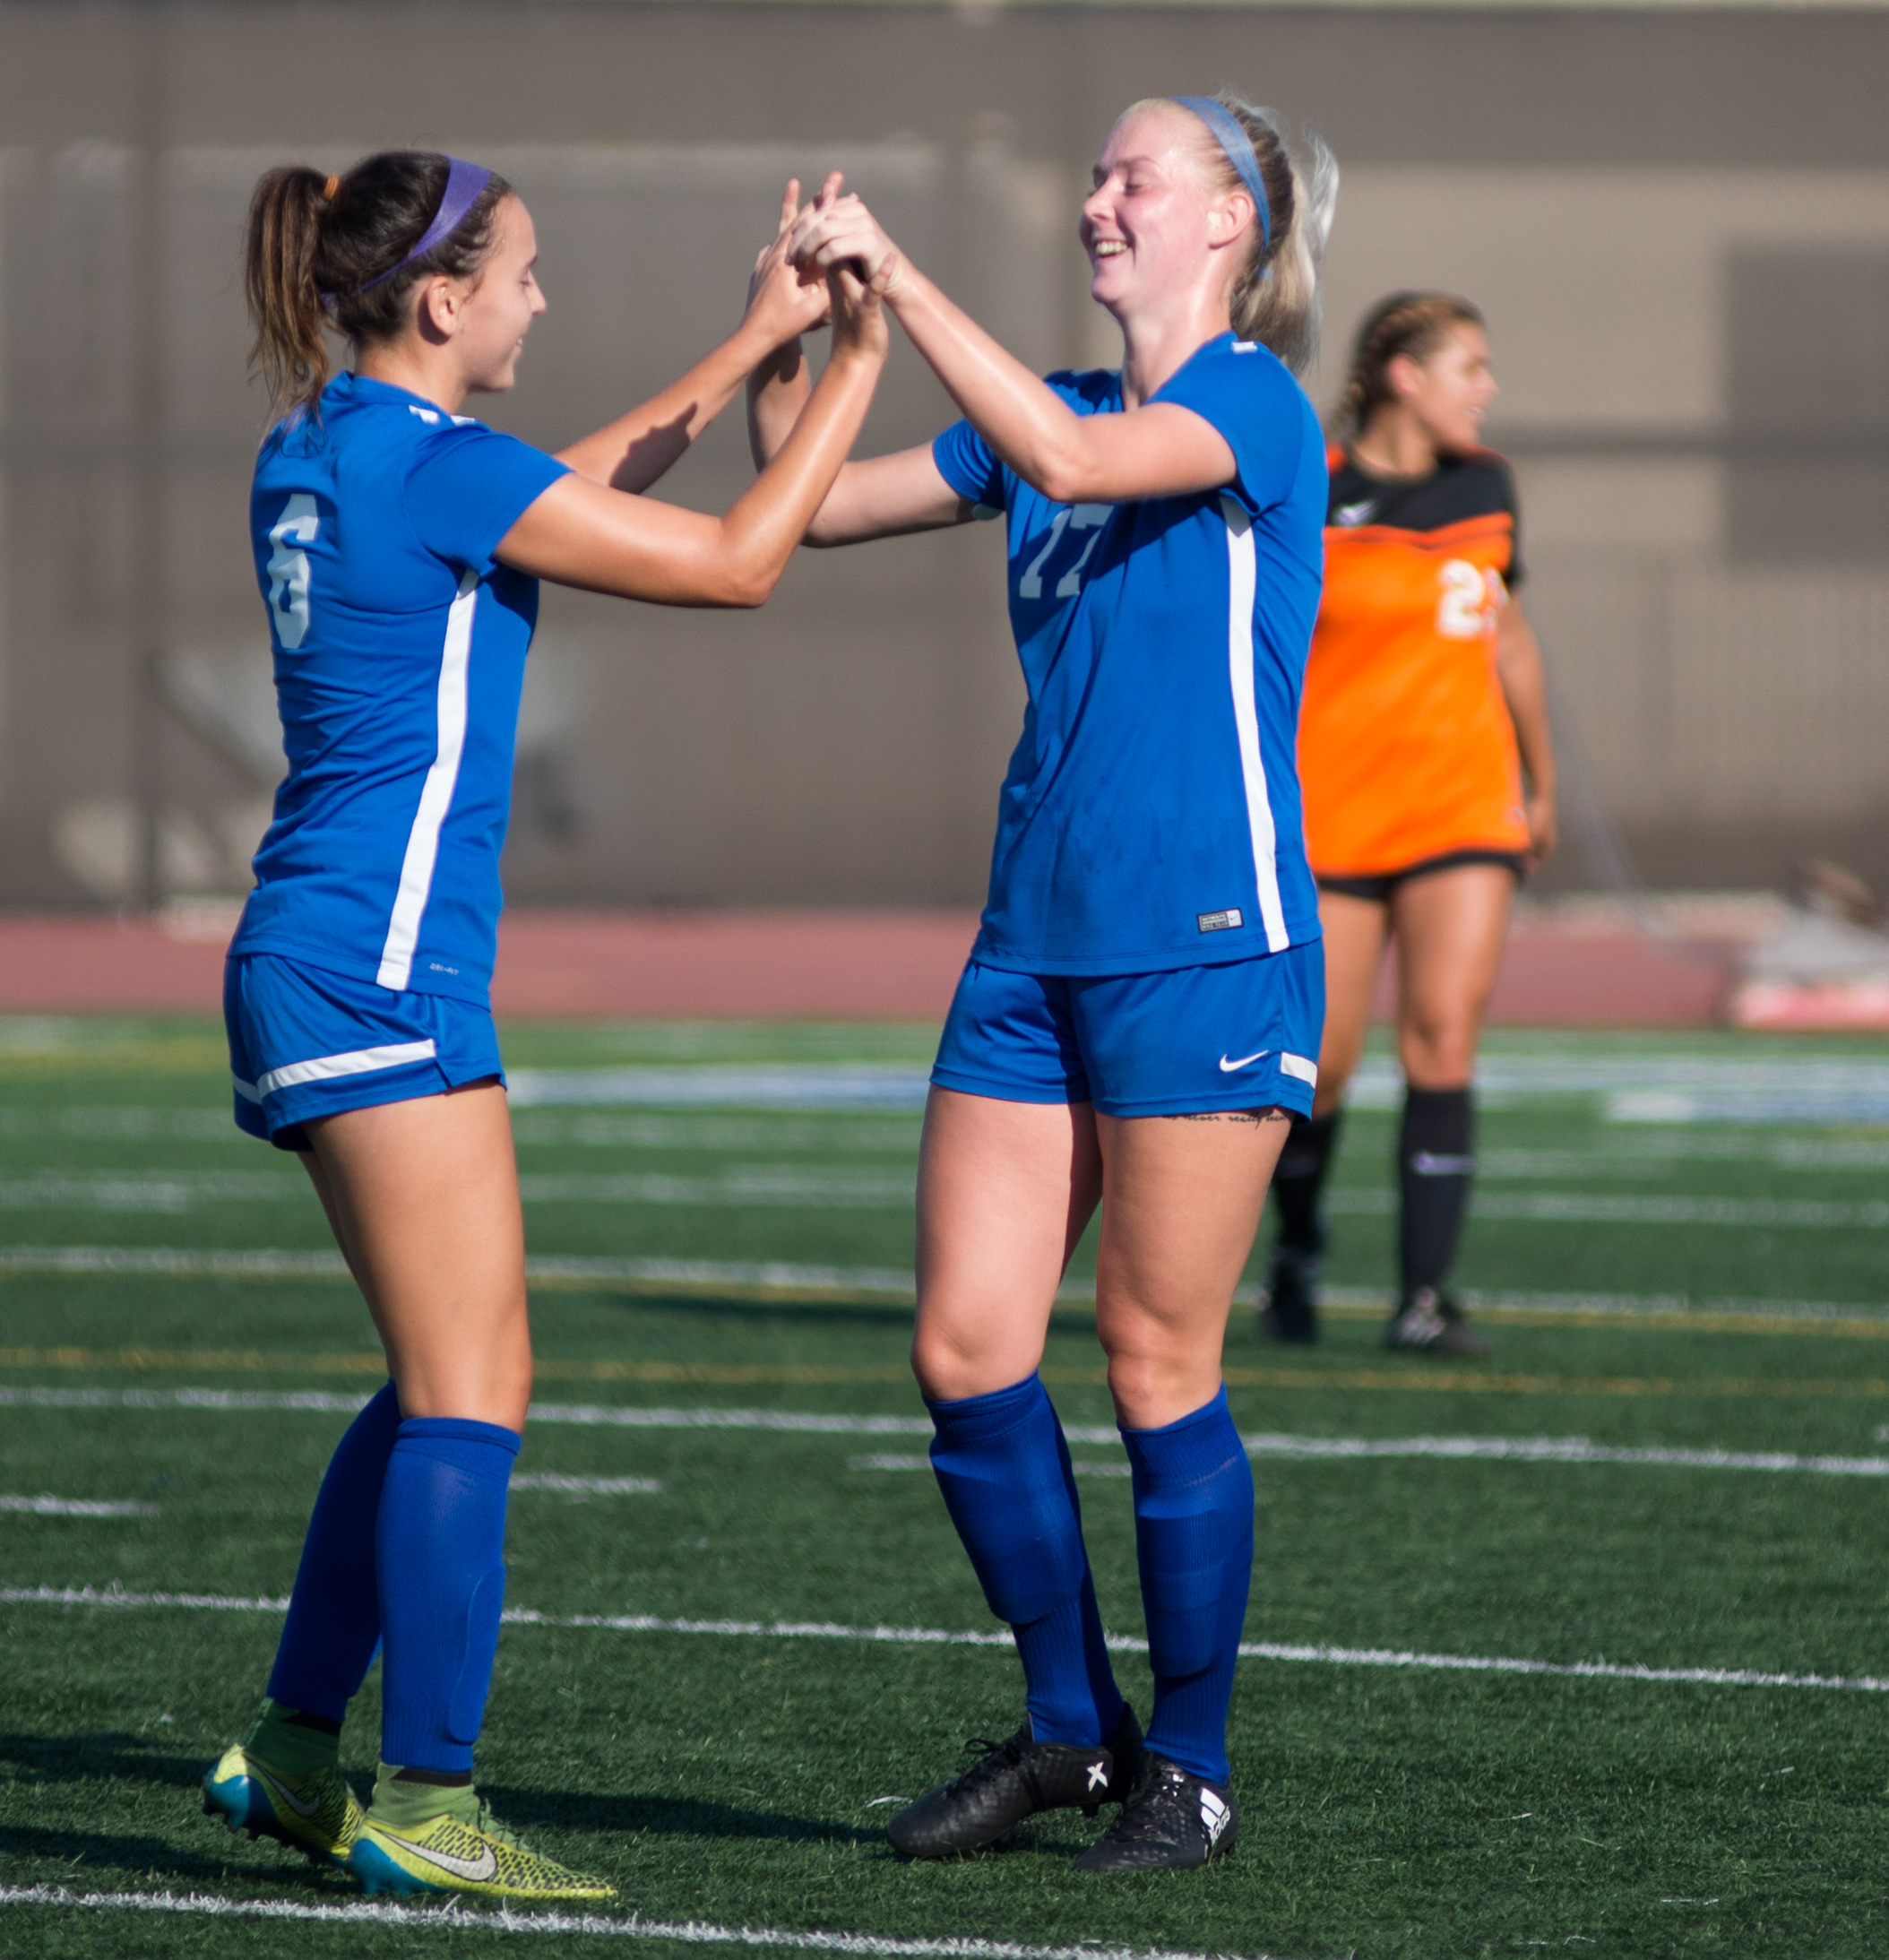 Santa Monica College Corsair Filippa Struxsjo (17) (R) celebrates after scoring the first goal of the game against Ventura College with her teammate Antoinette Saldana (6) (L) on Tuesday September 26, 2017 on the Corsair Field at Santa Monica College in Santa Monica, California. The Corsairs win the game 2-1. (Josue Martinez)